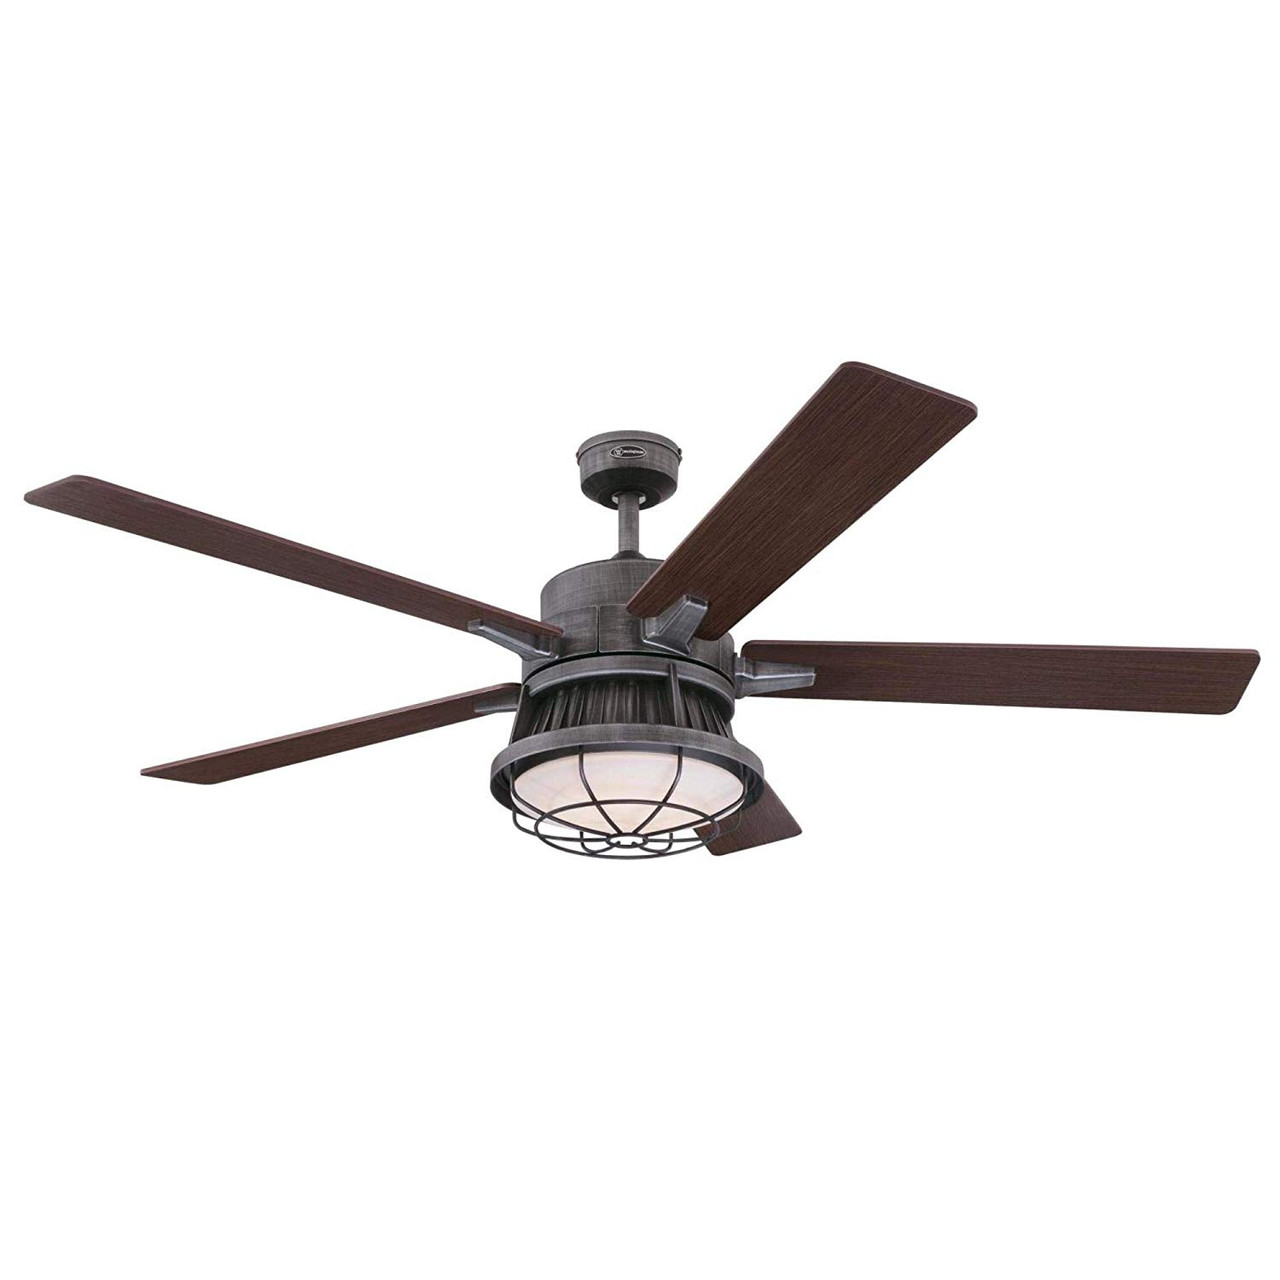 Westinghouse Lighting 7220400 Chambers 60 Inch Ceiling Fan Distressed Aluminum Indoor Dimmable Led Light Kit Opal Frosted Glass Removable Cage And Remote Control Included At Clw Lighting